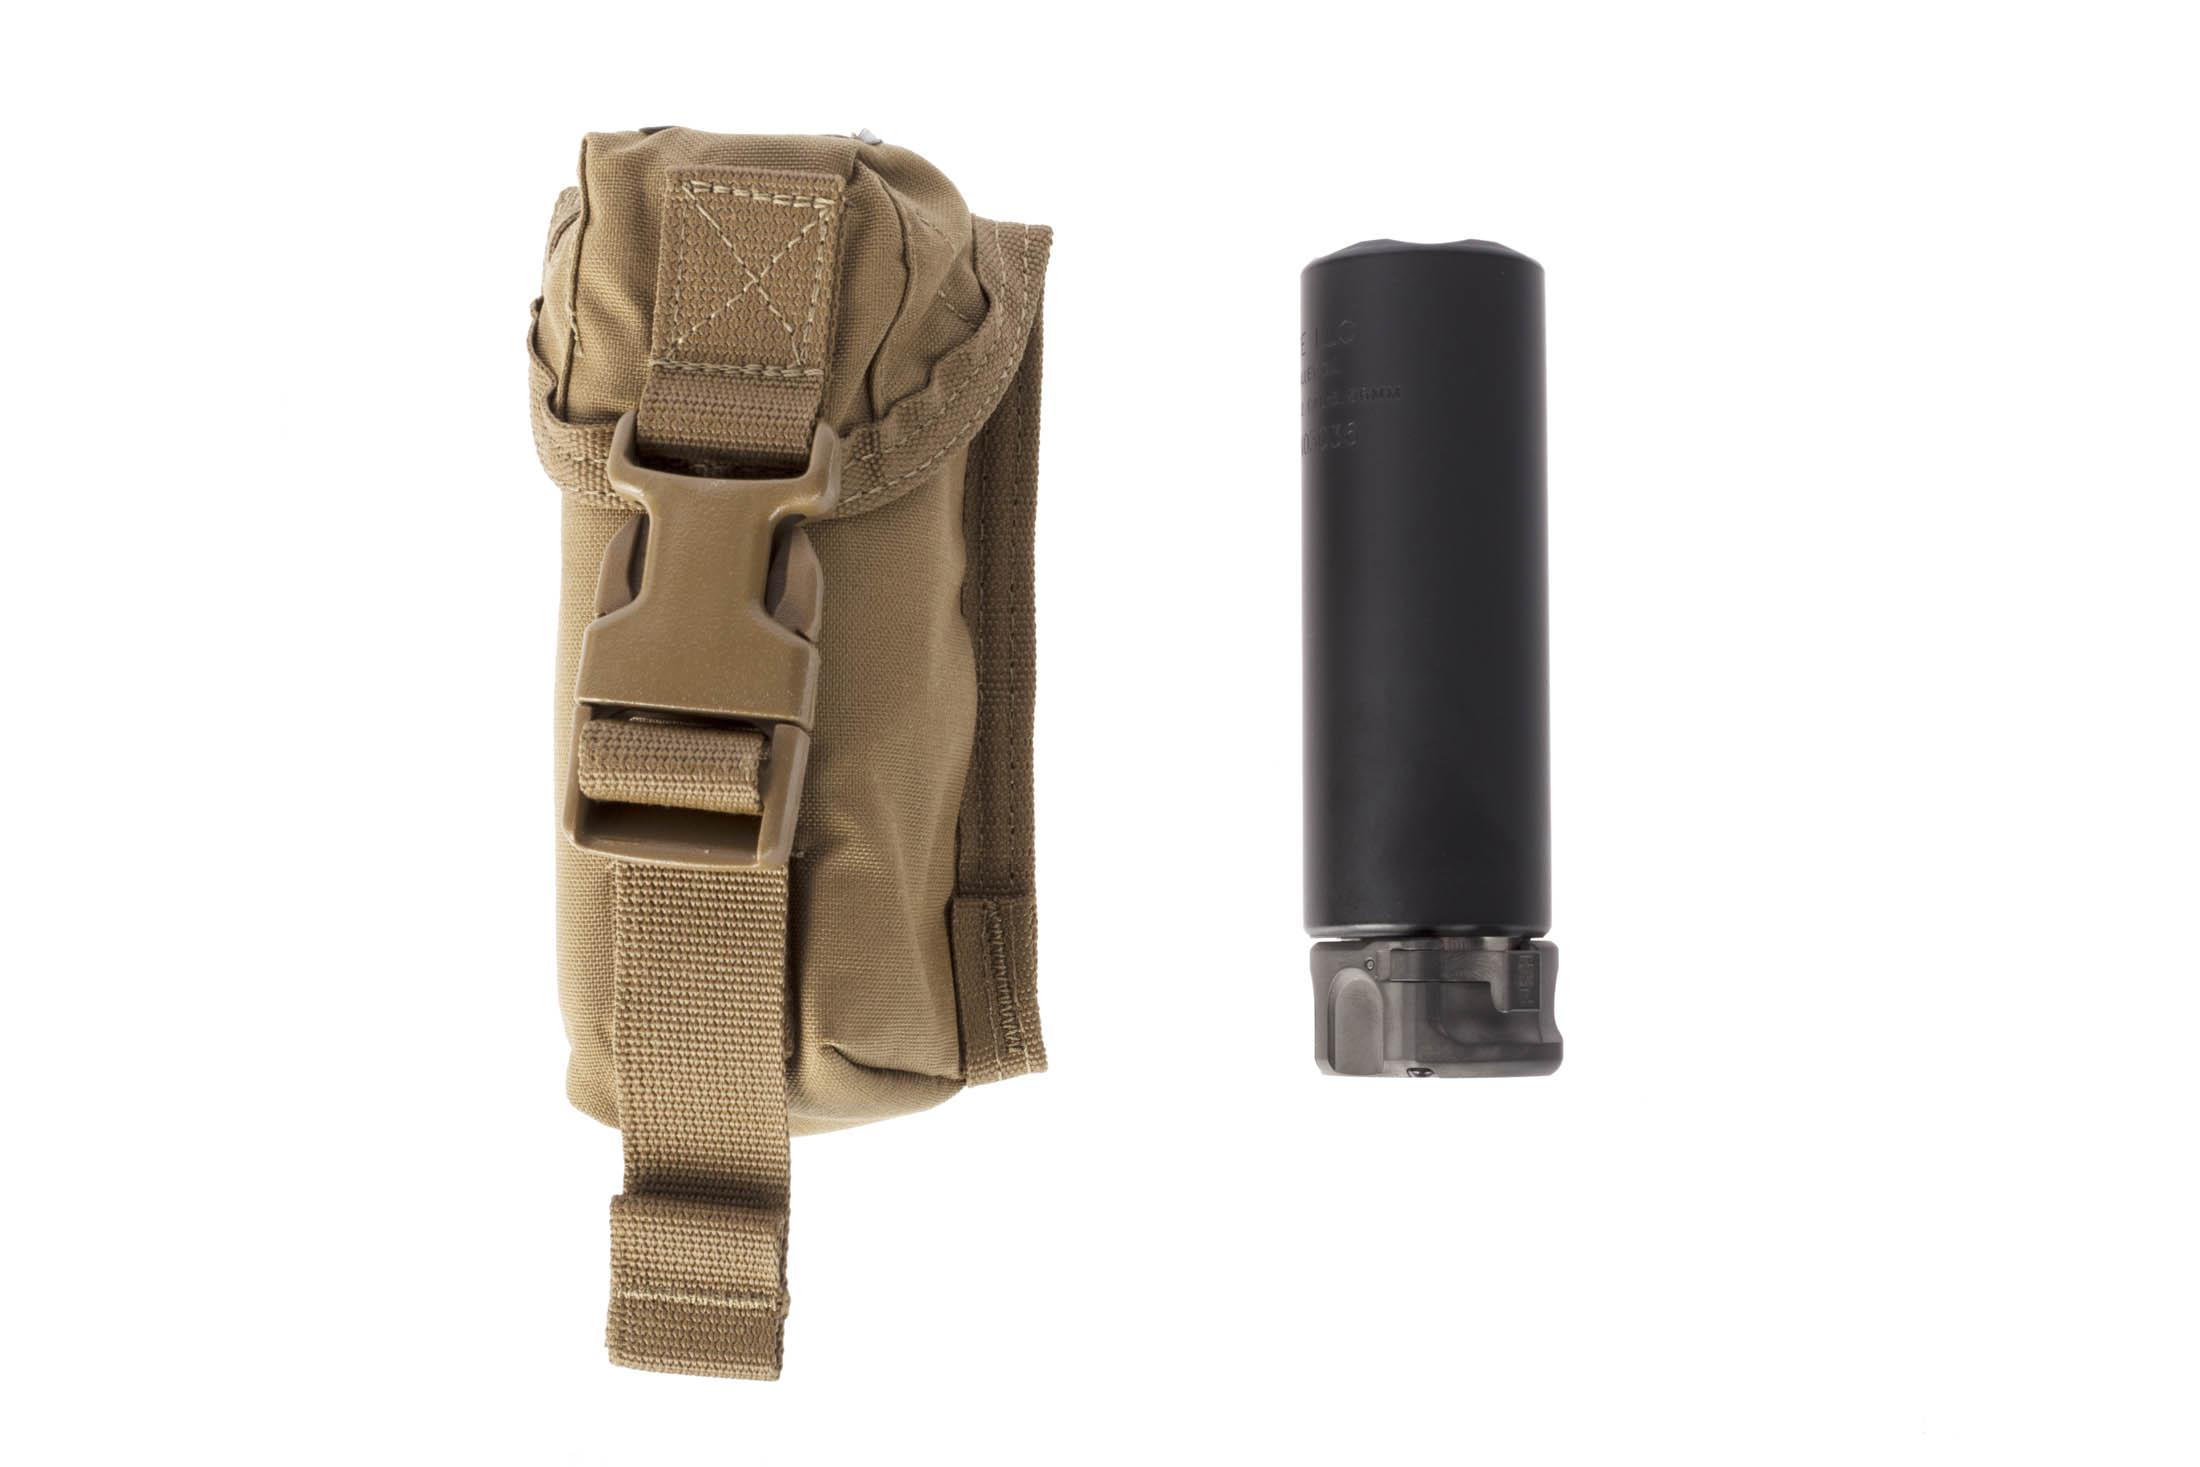 SureFire FastAttach 5.56 NATO SOCOM Mini 2 silencer includes a convenient carry case.